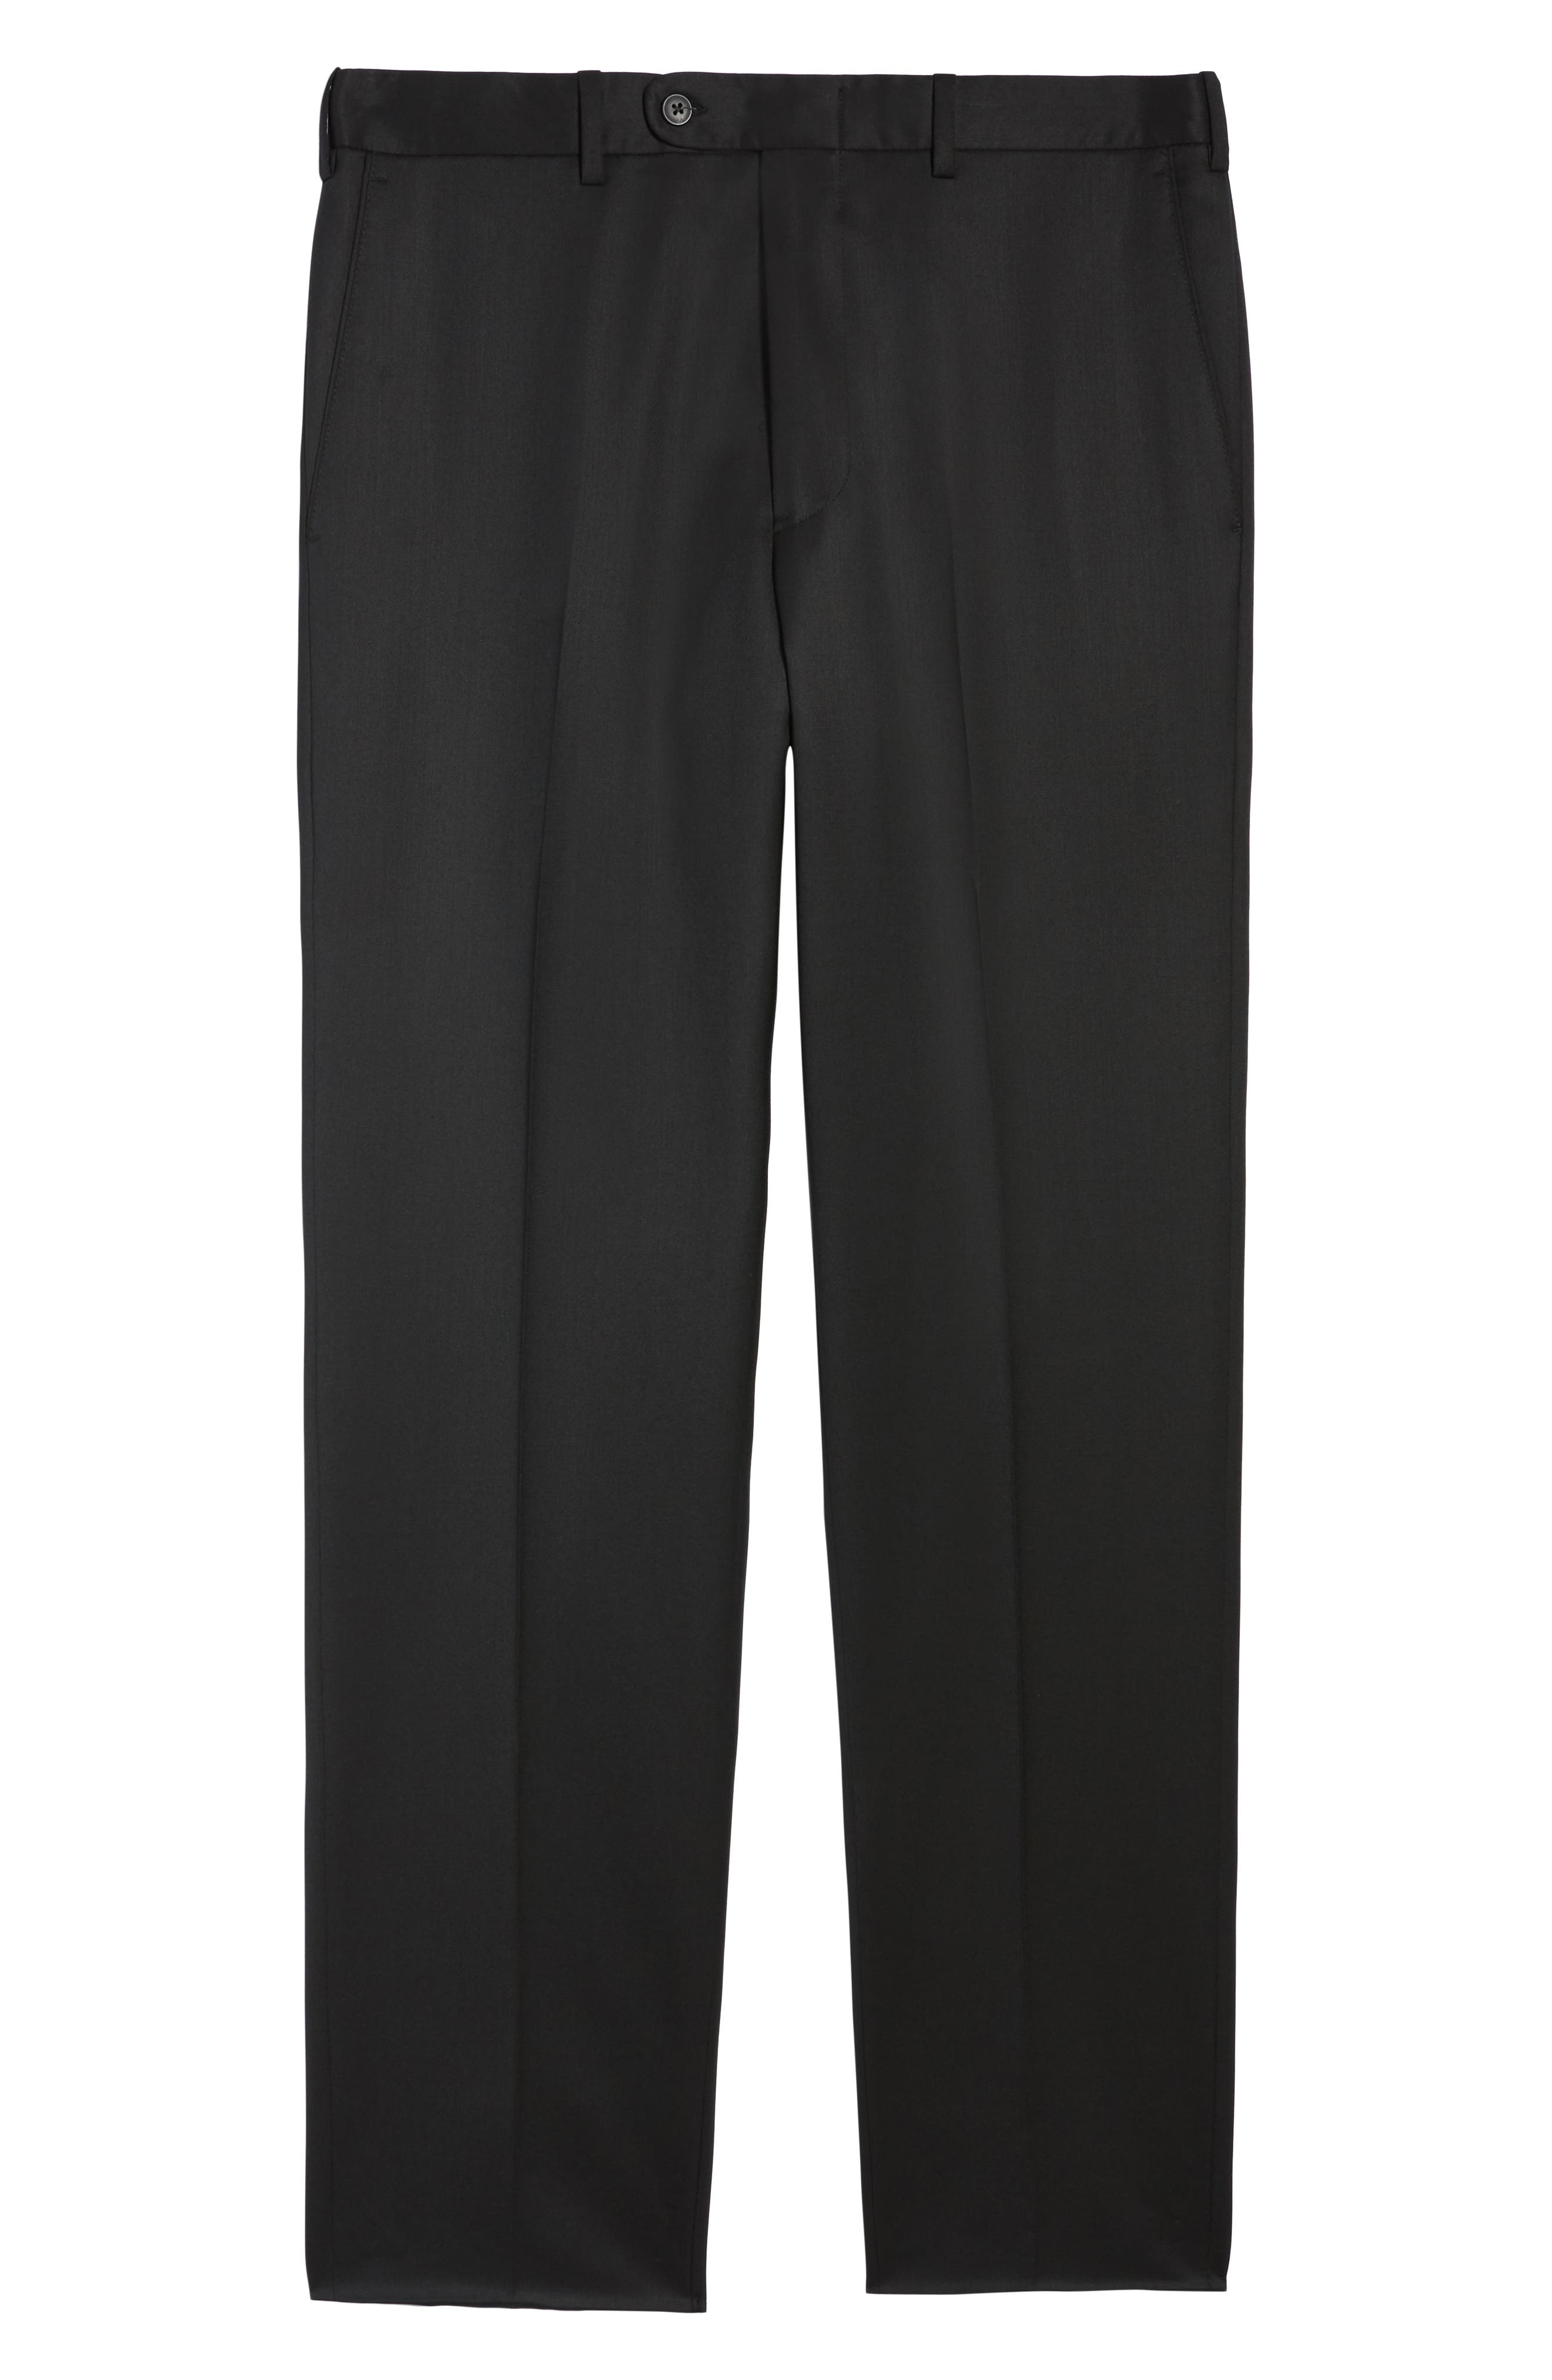 Torino Traditional Fit Flat Front Solid Trousers,                             Alternate thumbnail 6, color,                             BLACK